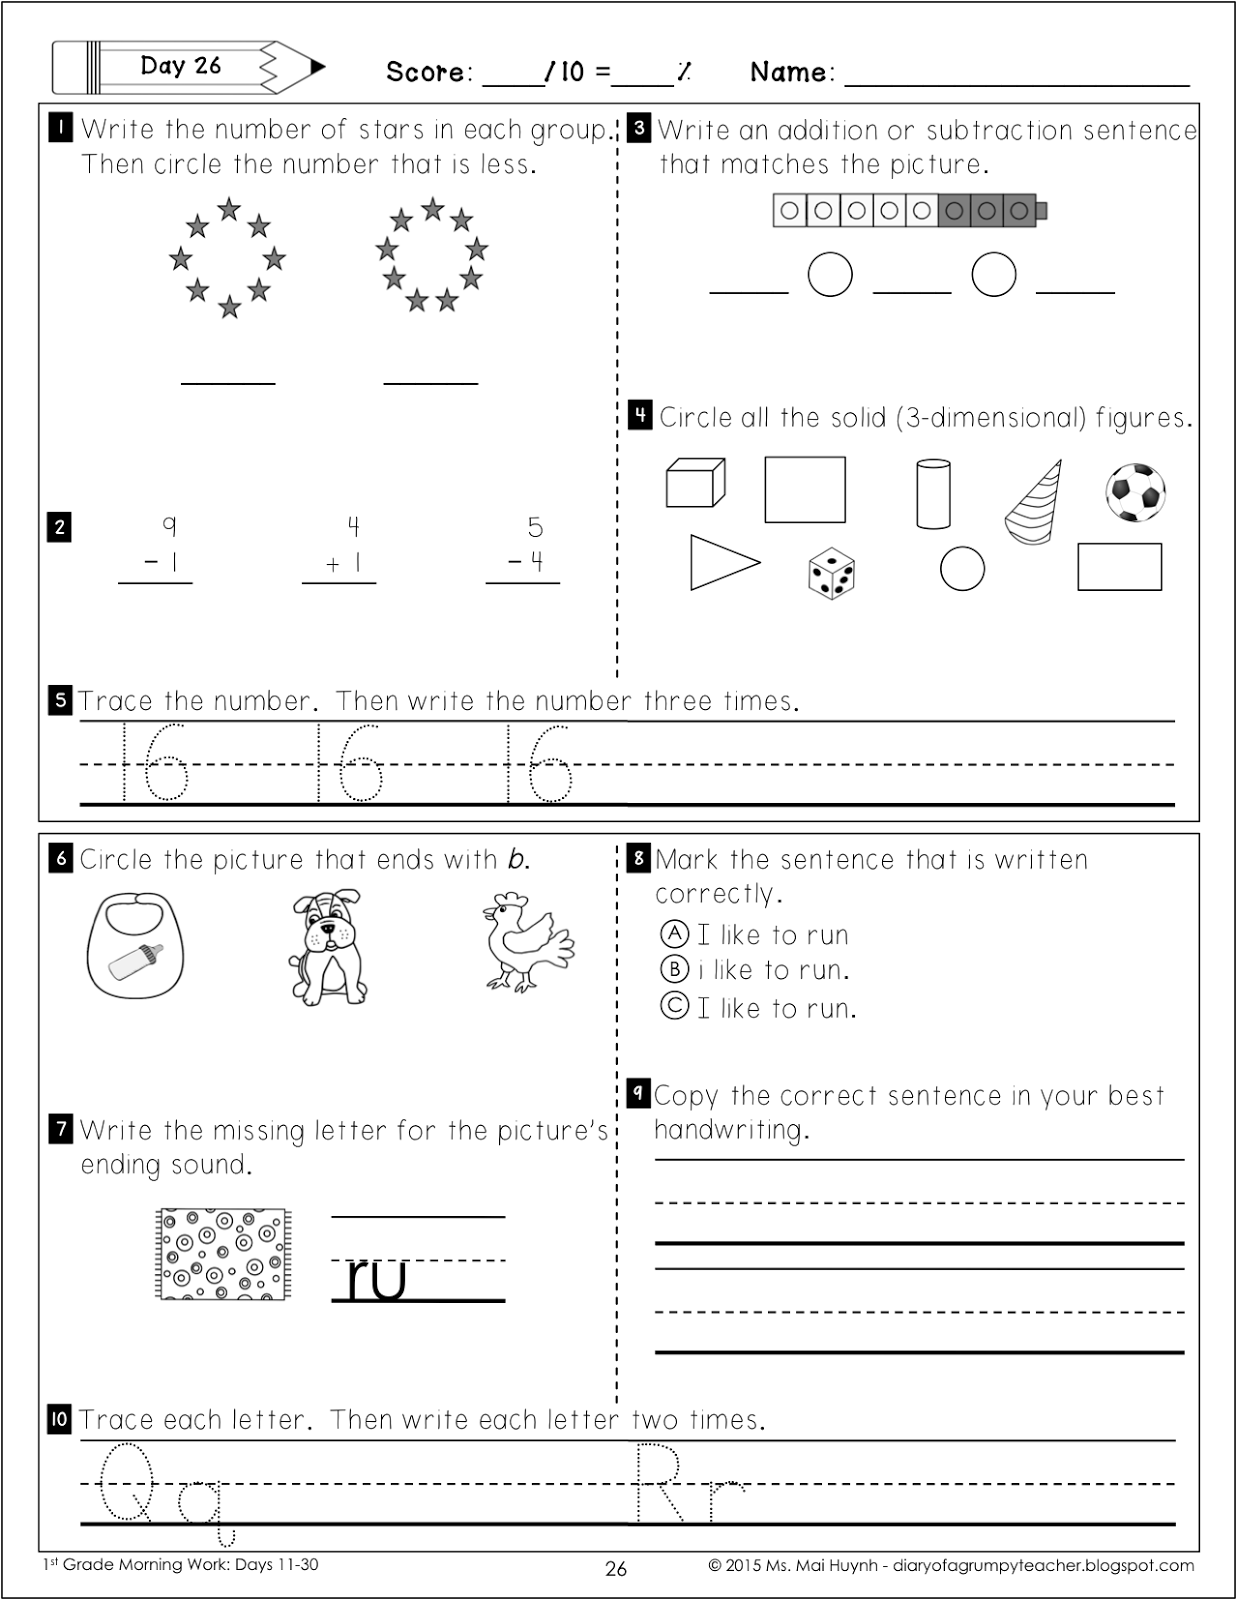 worksheet Chocolate Fever Worksheets diary of a grumpy teacher september 2015 5 i turned 34 last week and finally got roomba ive been talking non stop about how great it would be to have for at least year now